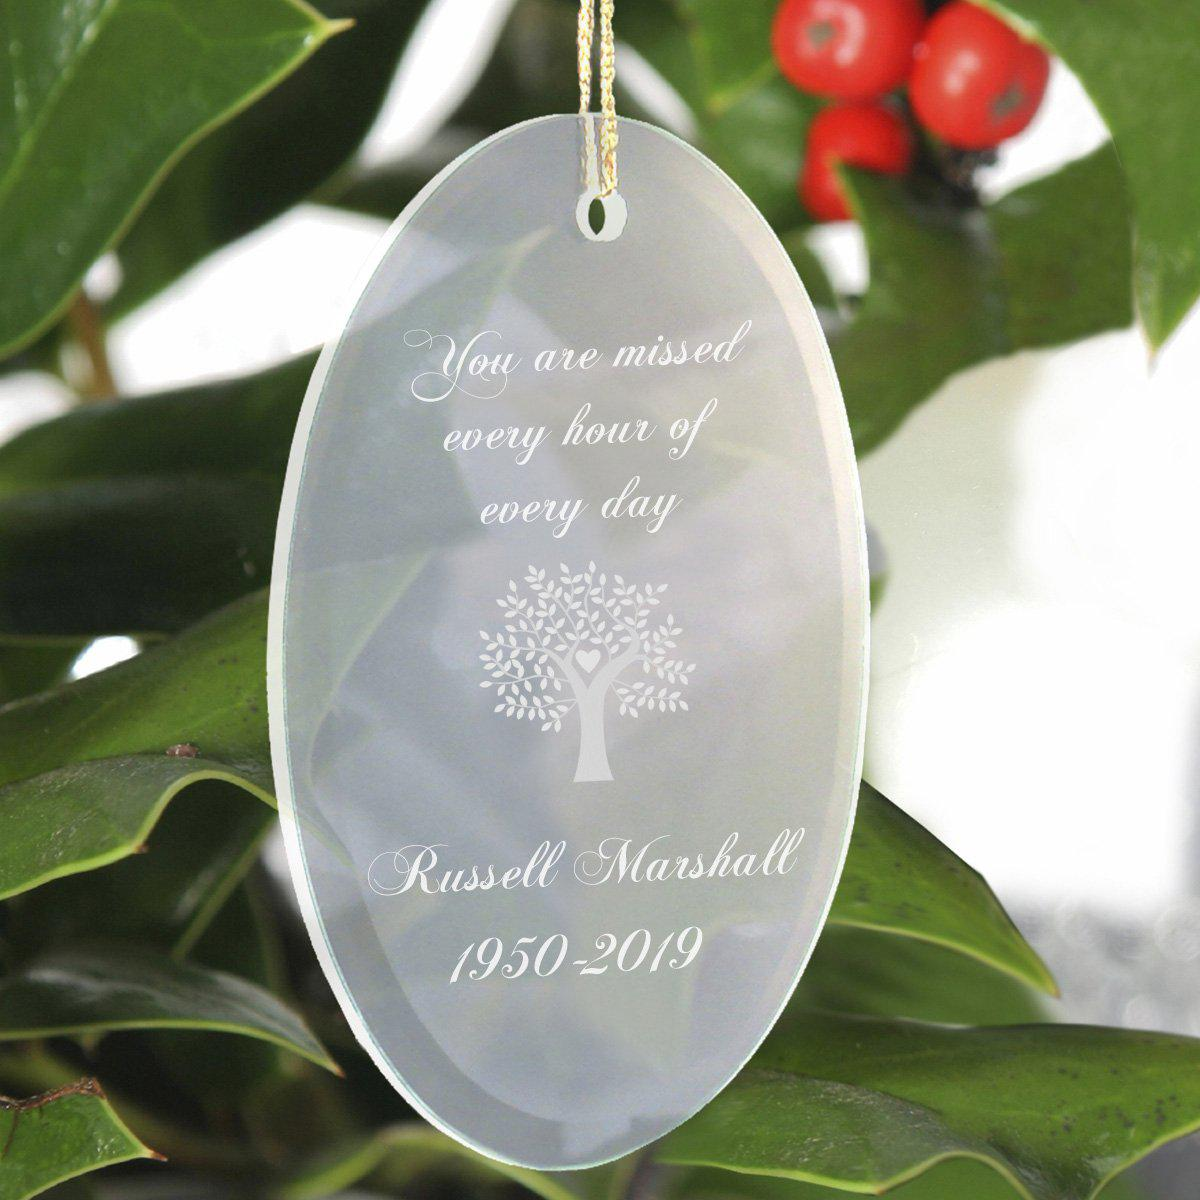 Memorial Christmas Ornaments.Personalized Memorial Ornament You Are Missed